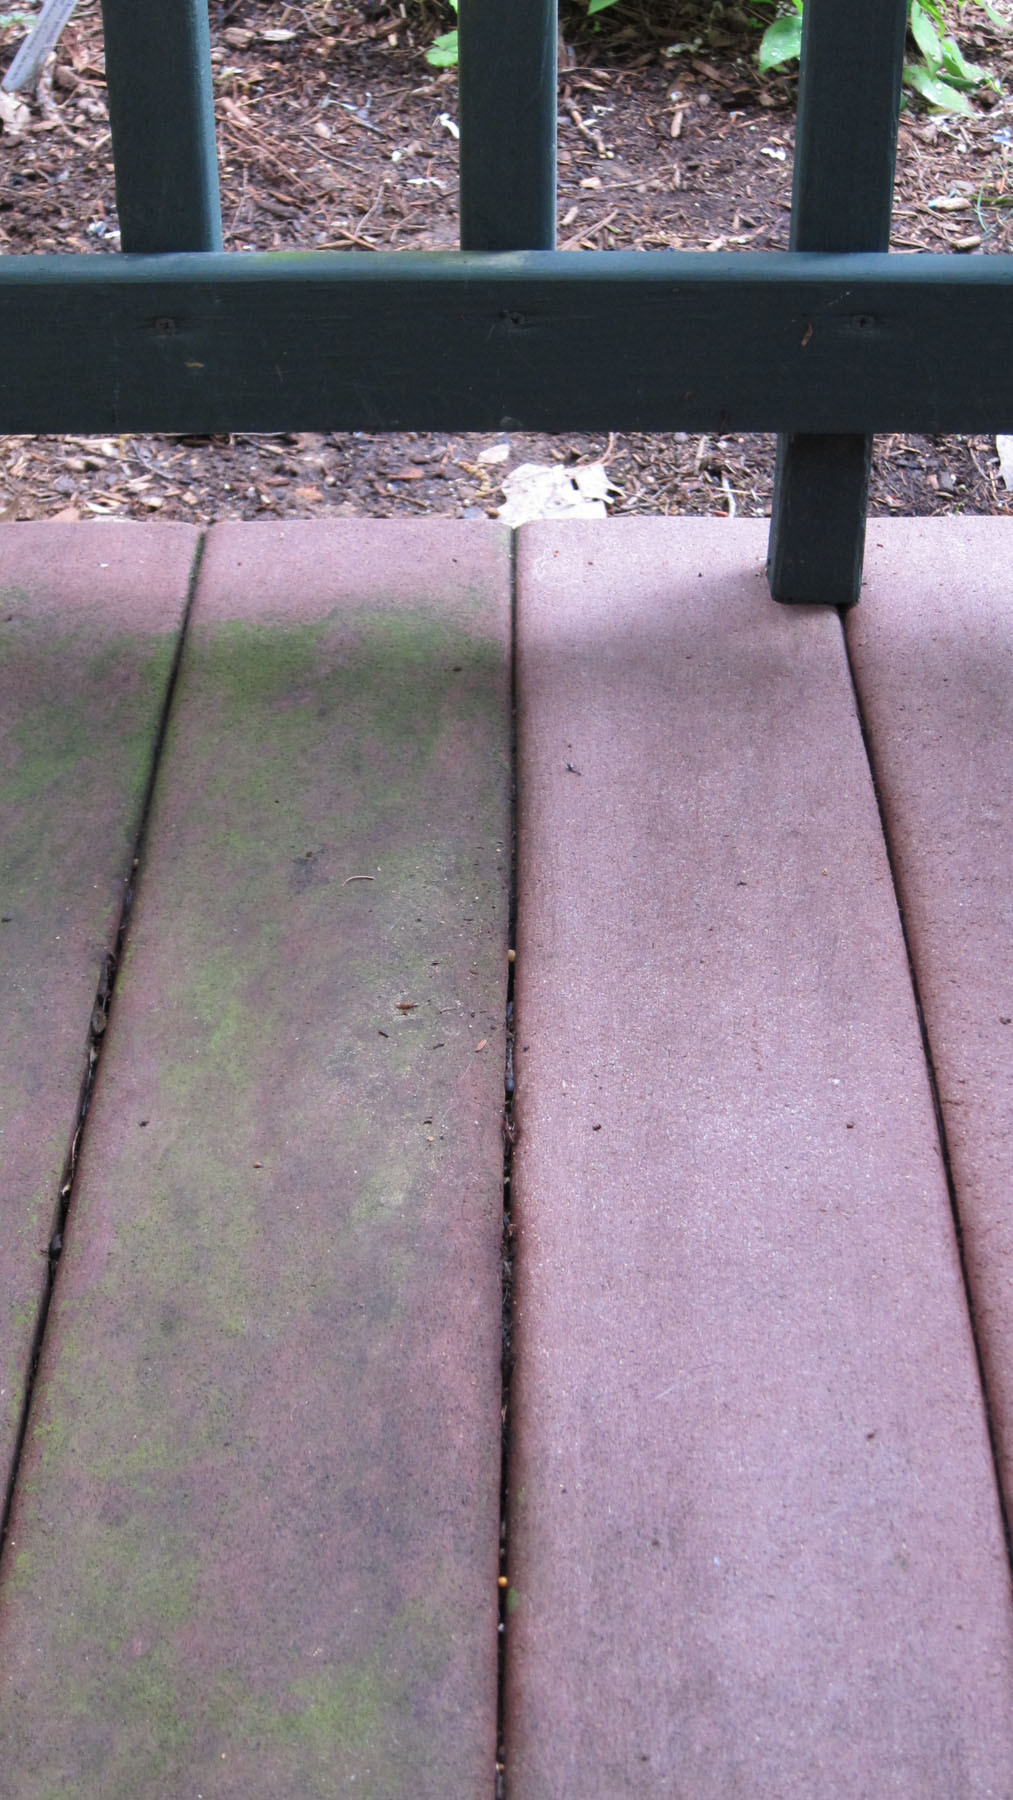 bleach was used to remove the algae from the decking boards on the right.